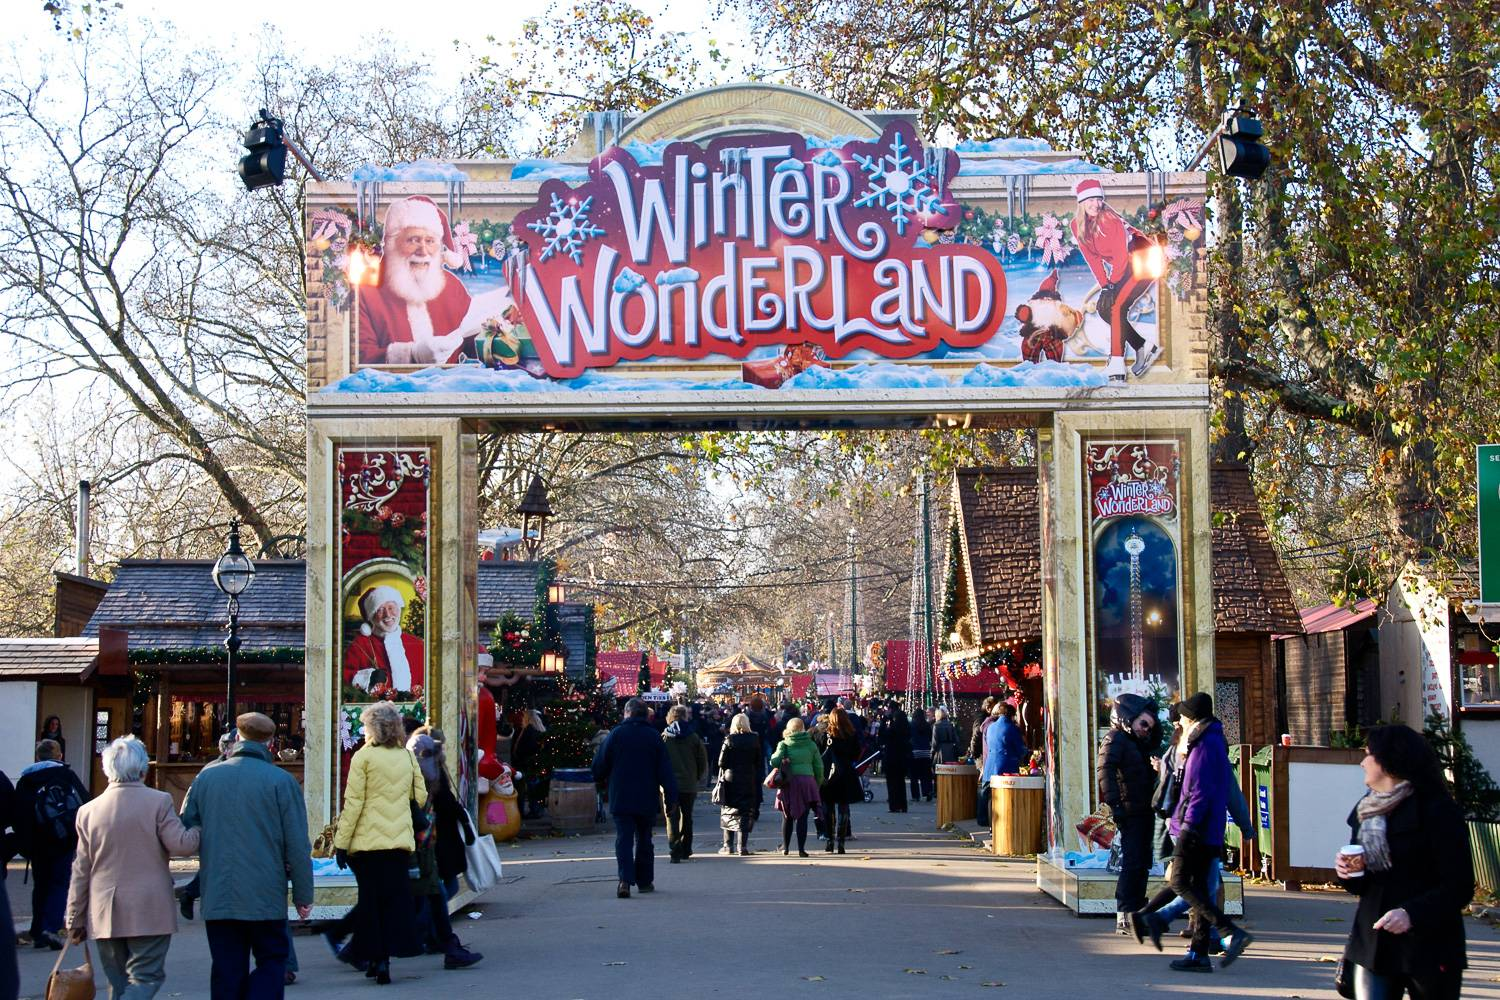 Foto des Eingangs zum Hyde Park Winter Wonderland in London.